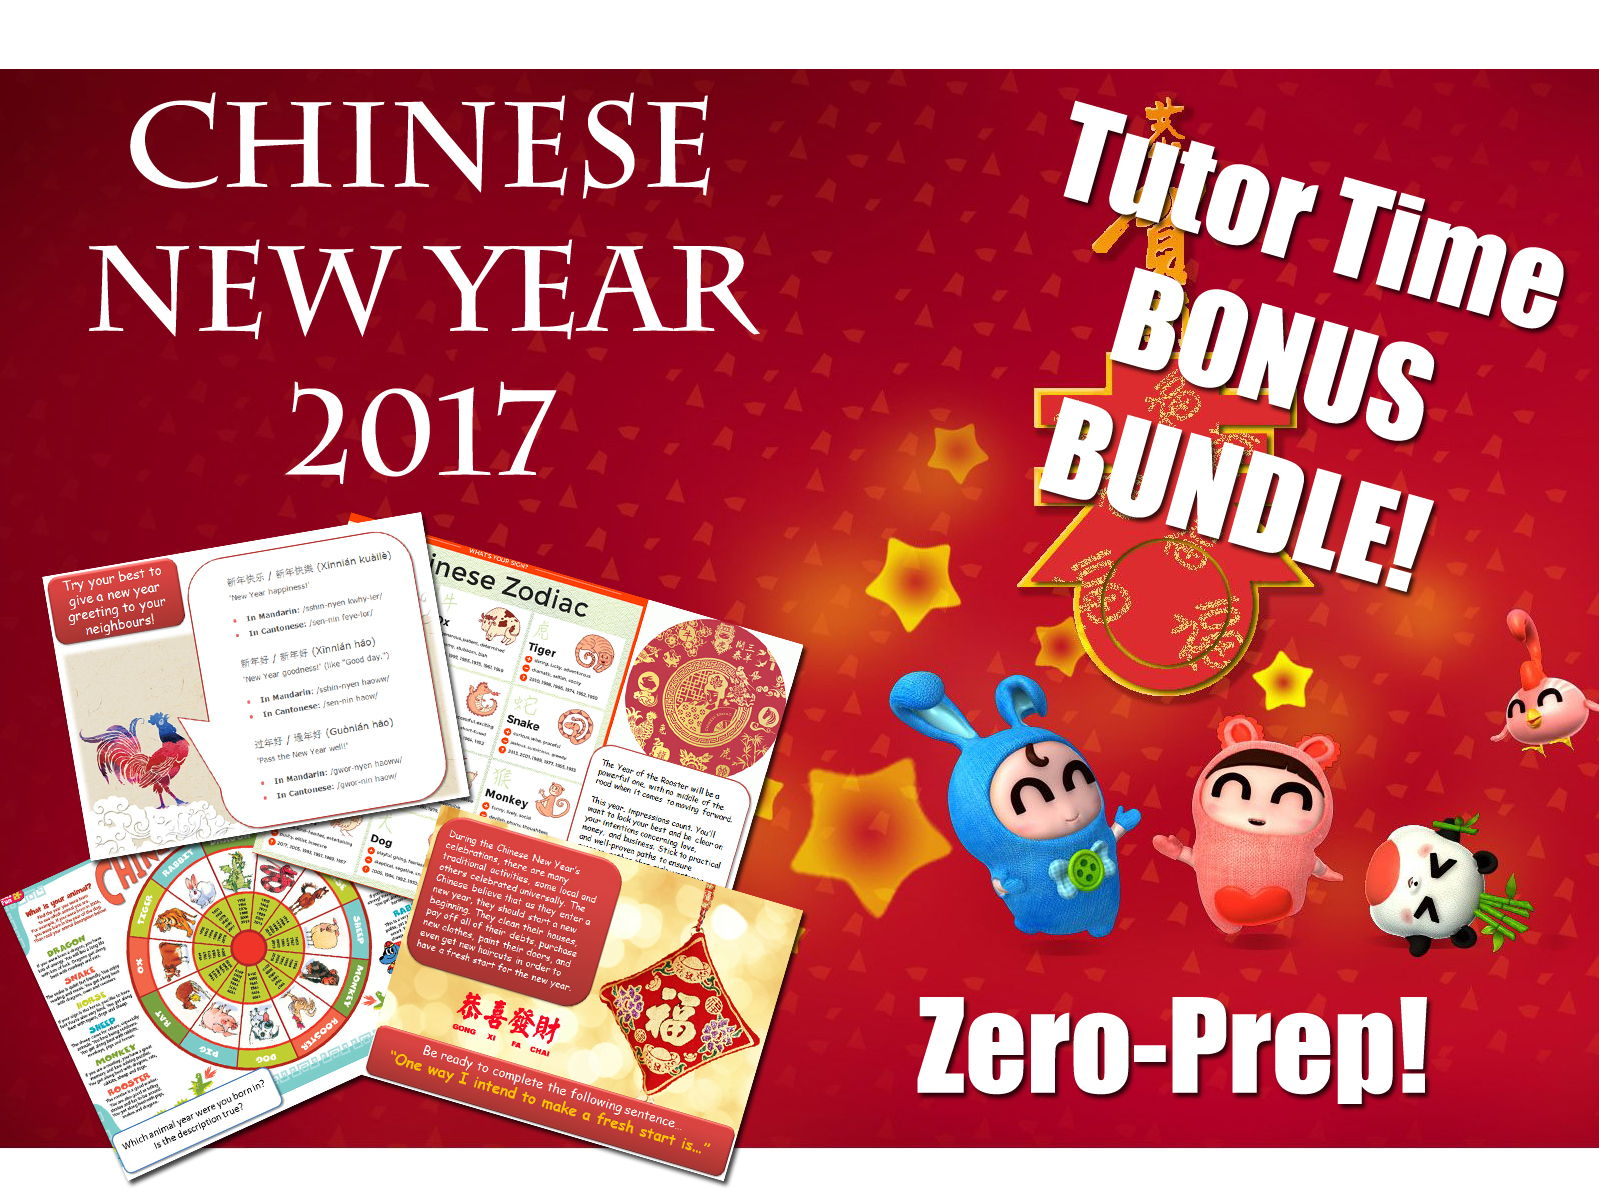 Chinese New Year 2017 - SPECIAL TUTOR RESOURCE PACK 4 - DEBATE GENERATORS!